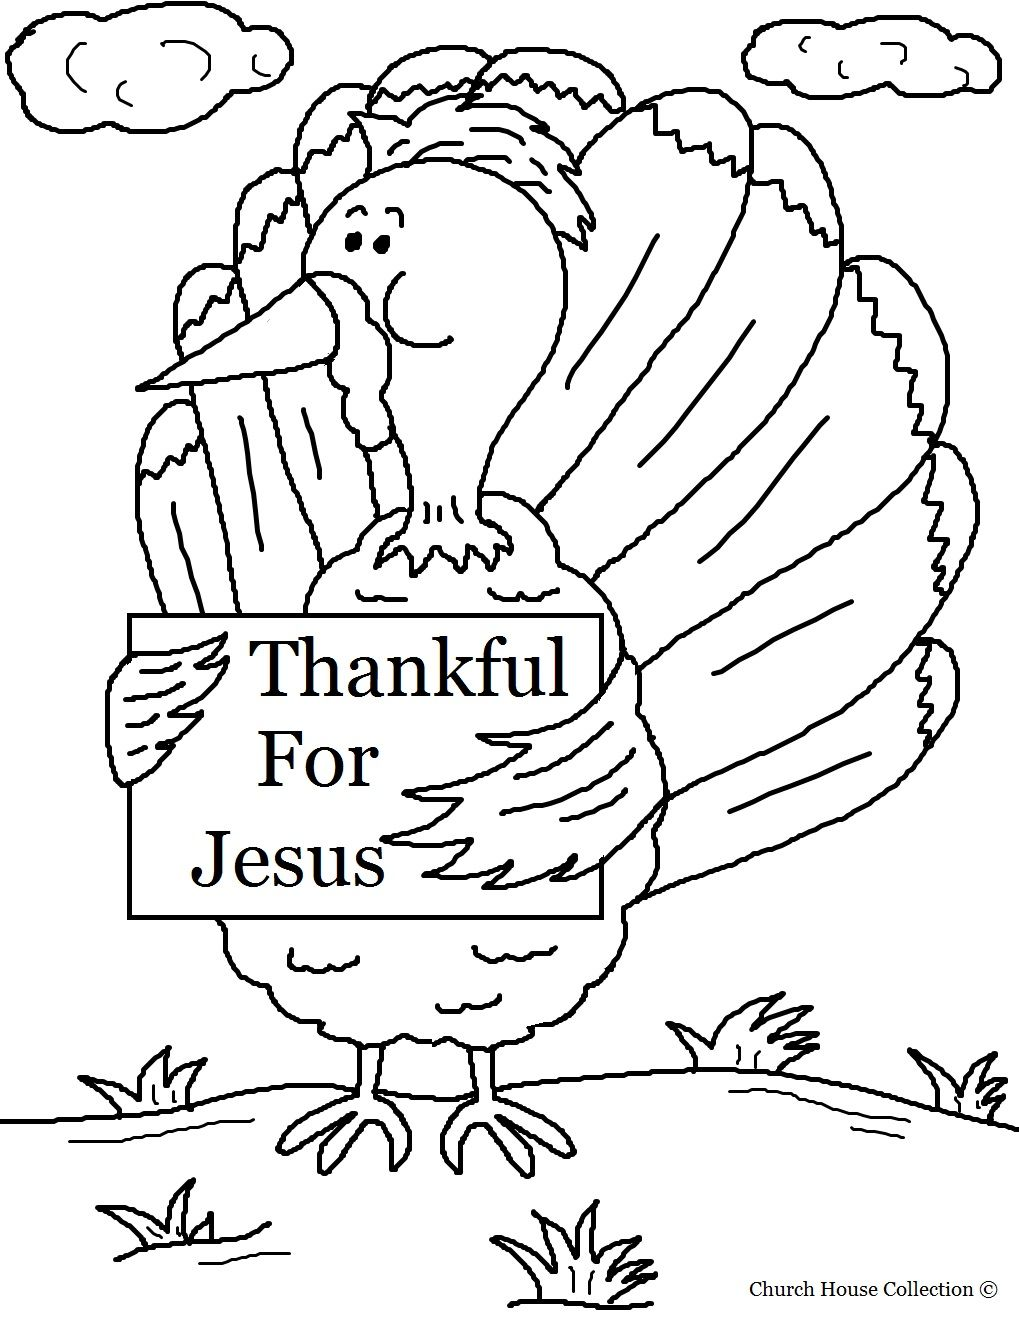 Uncategorized Coloring Pages For Church christian thanksgiving printables church house collection blog turkey holding sign thankful for jesus coloring page